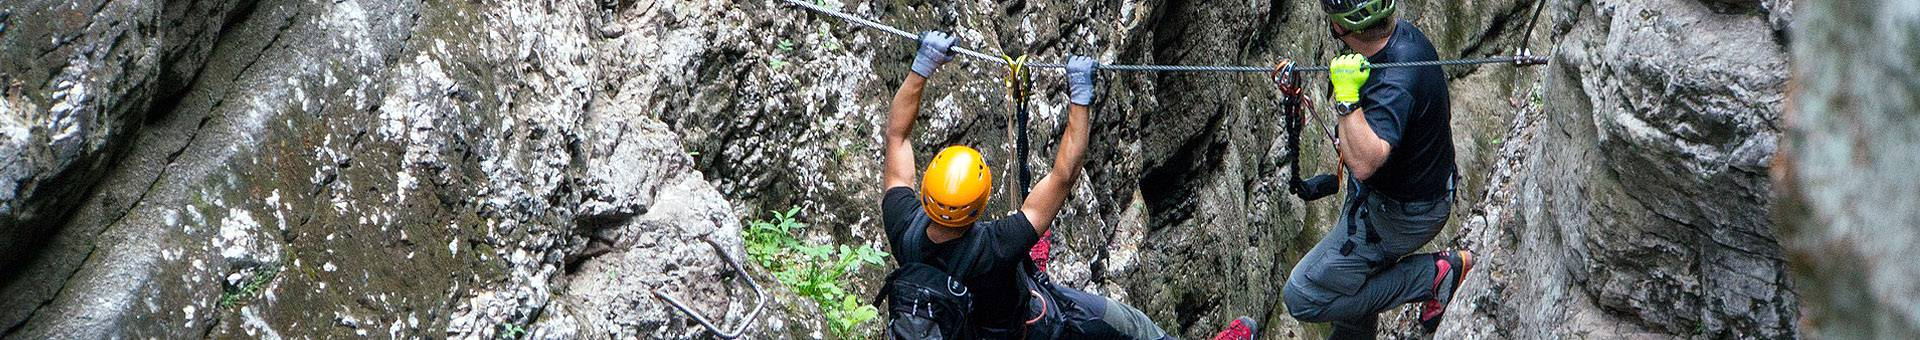 Via Ferrata Gear